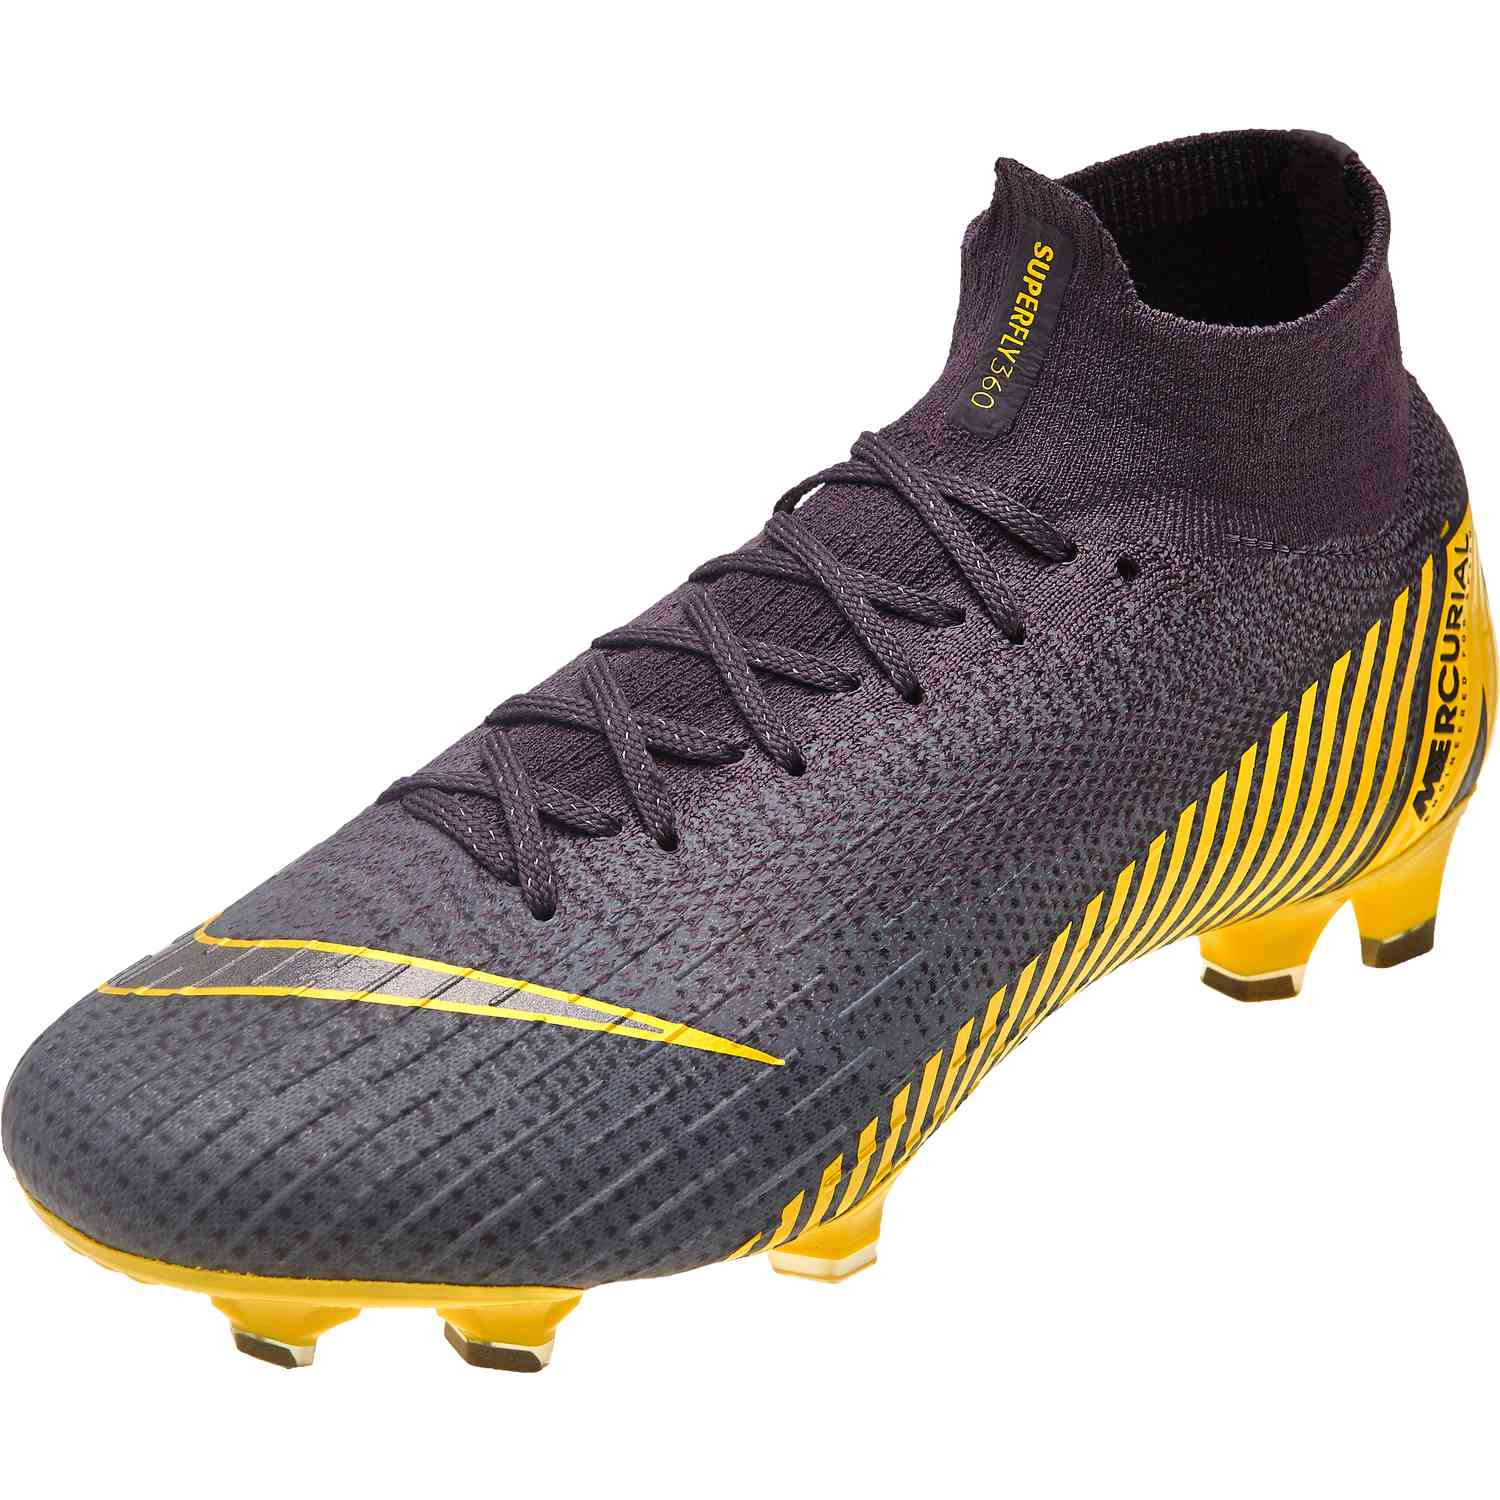 Hábil mejilla Hacer bien  Nike Mercurial Superfly 6 Elite FG - Game Over - Soccer Master